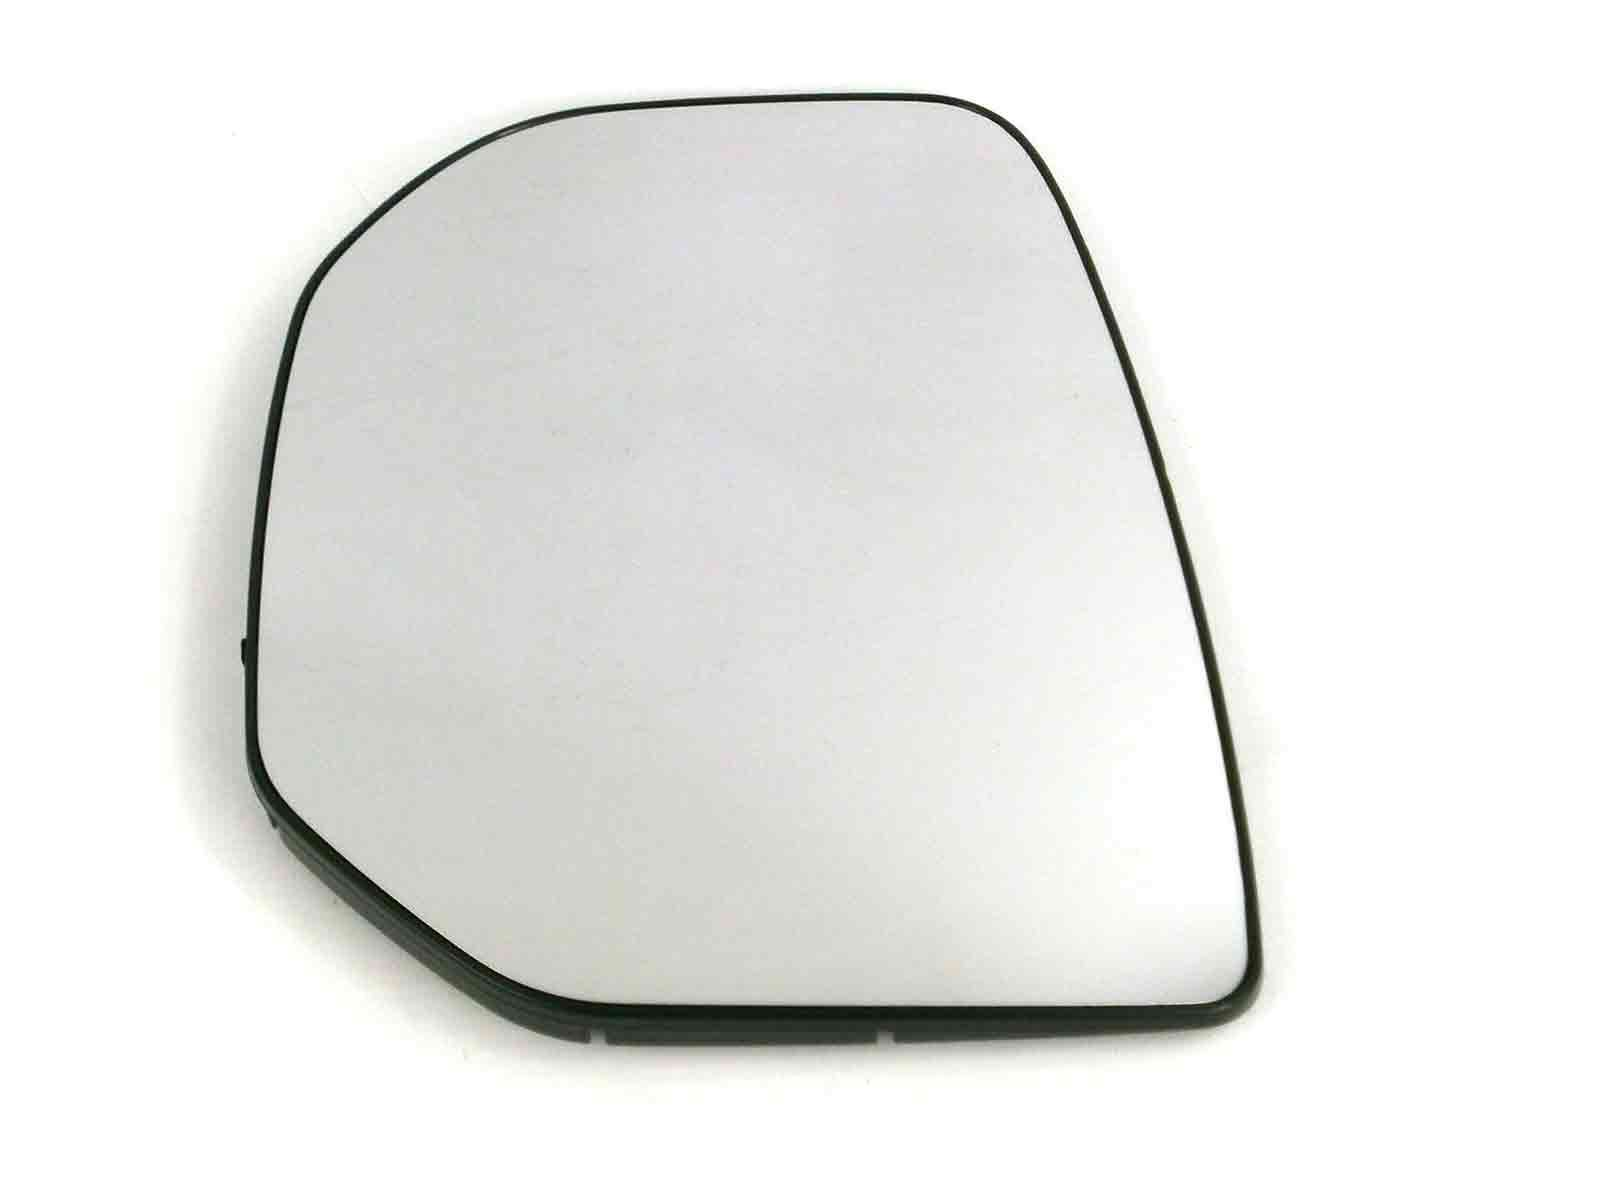 Peugeot Bipper 2008-/> Wing Mirror Glass Heated Pair Left /& Right